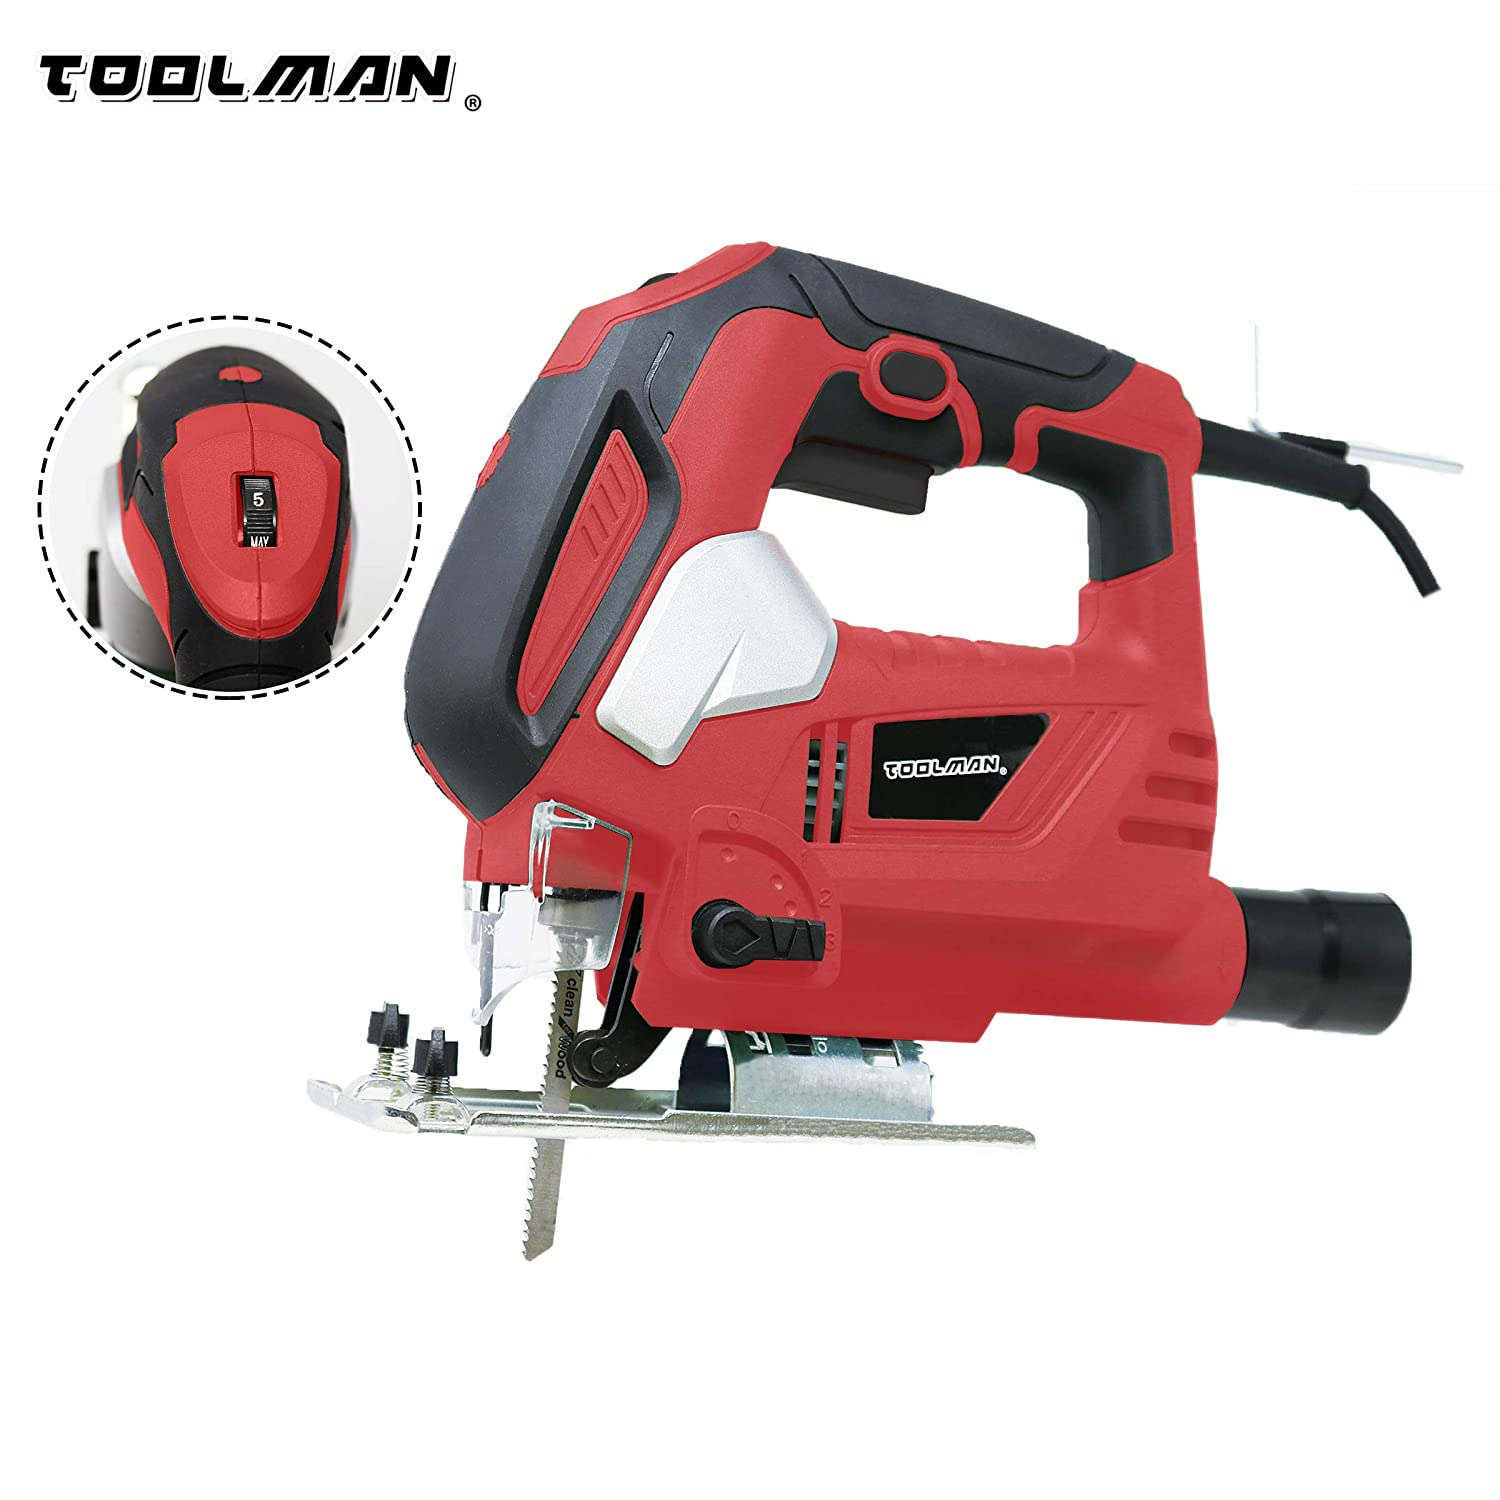 Lion Tools DB6204 Toolman 6.5A Variable Speed Jig Saw works with DeWalt Makita Ryobi Accessories